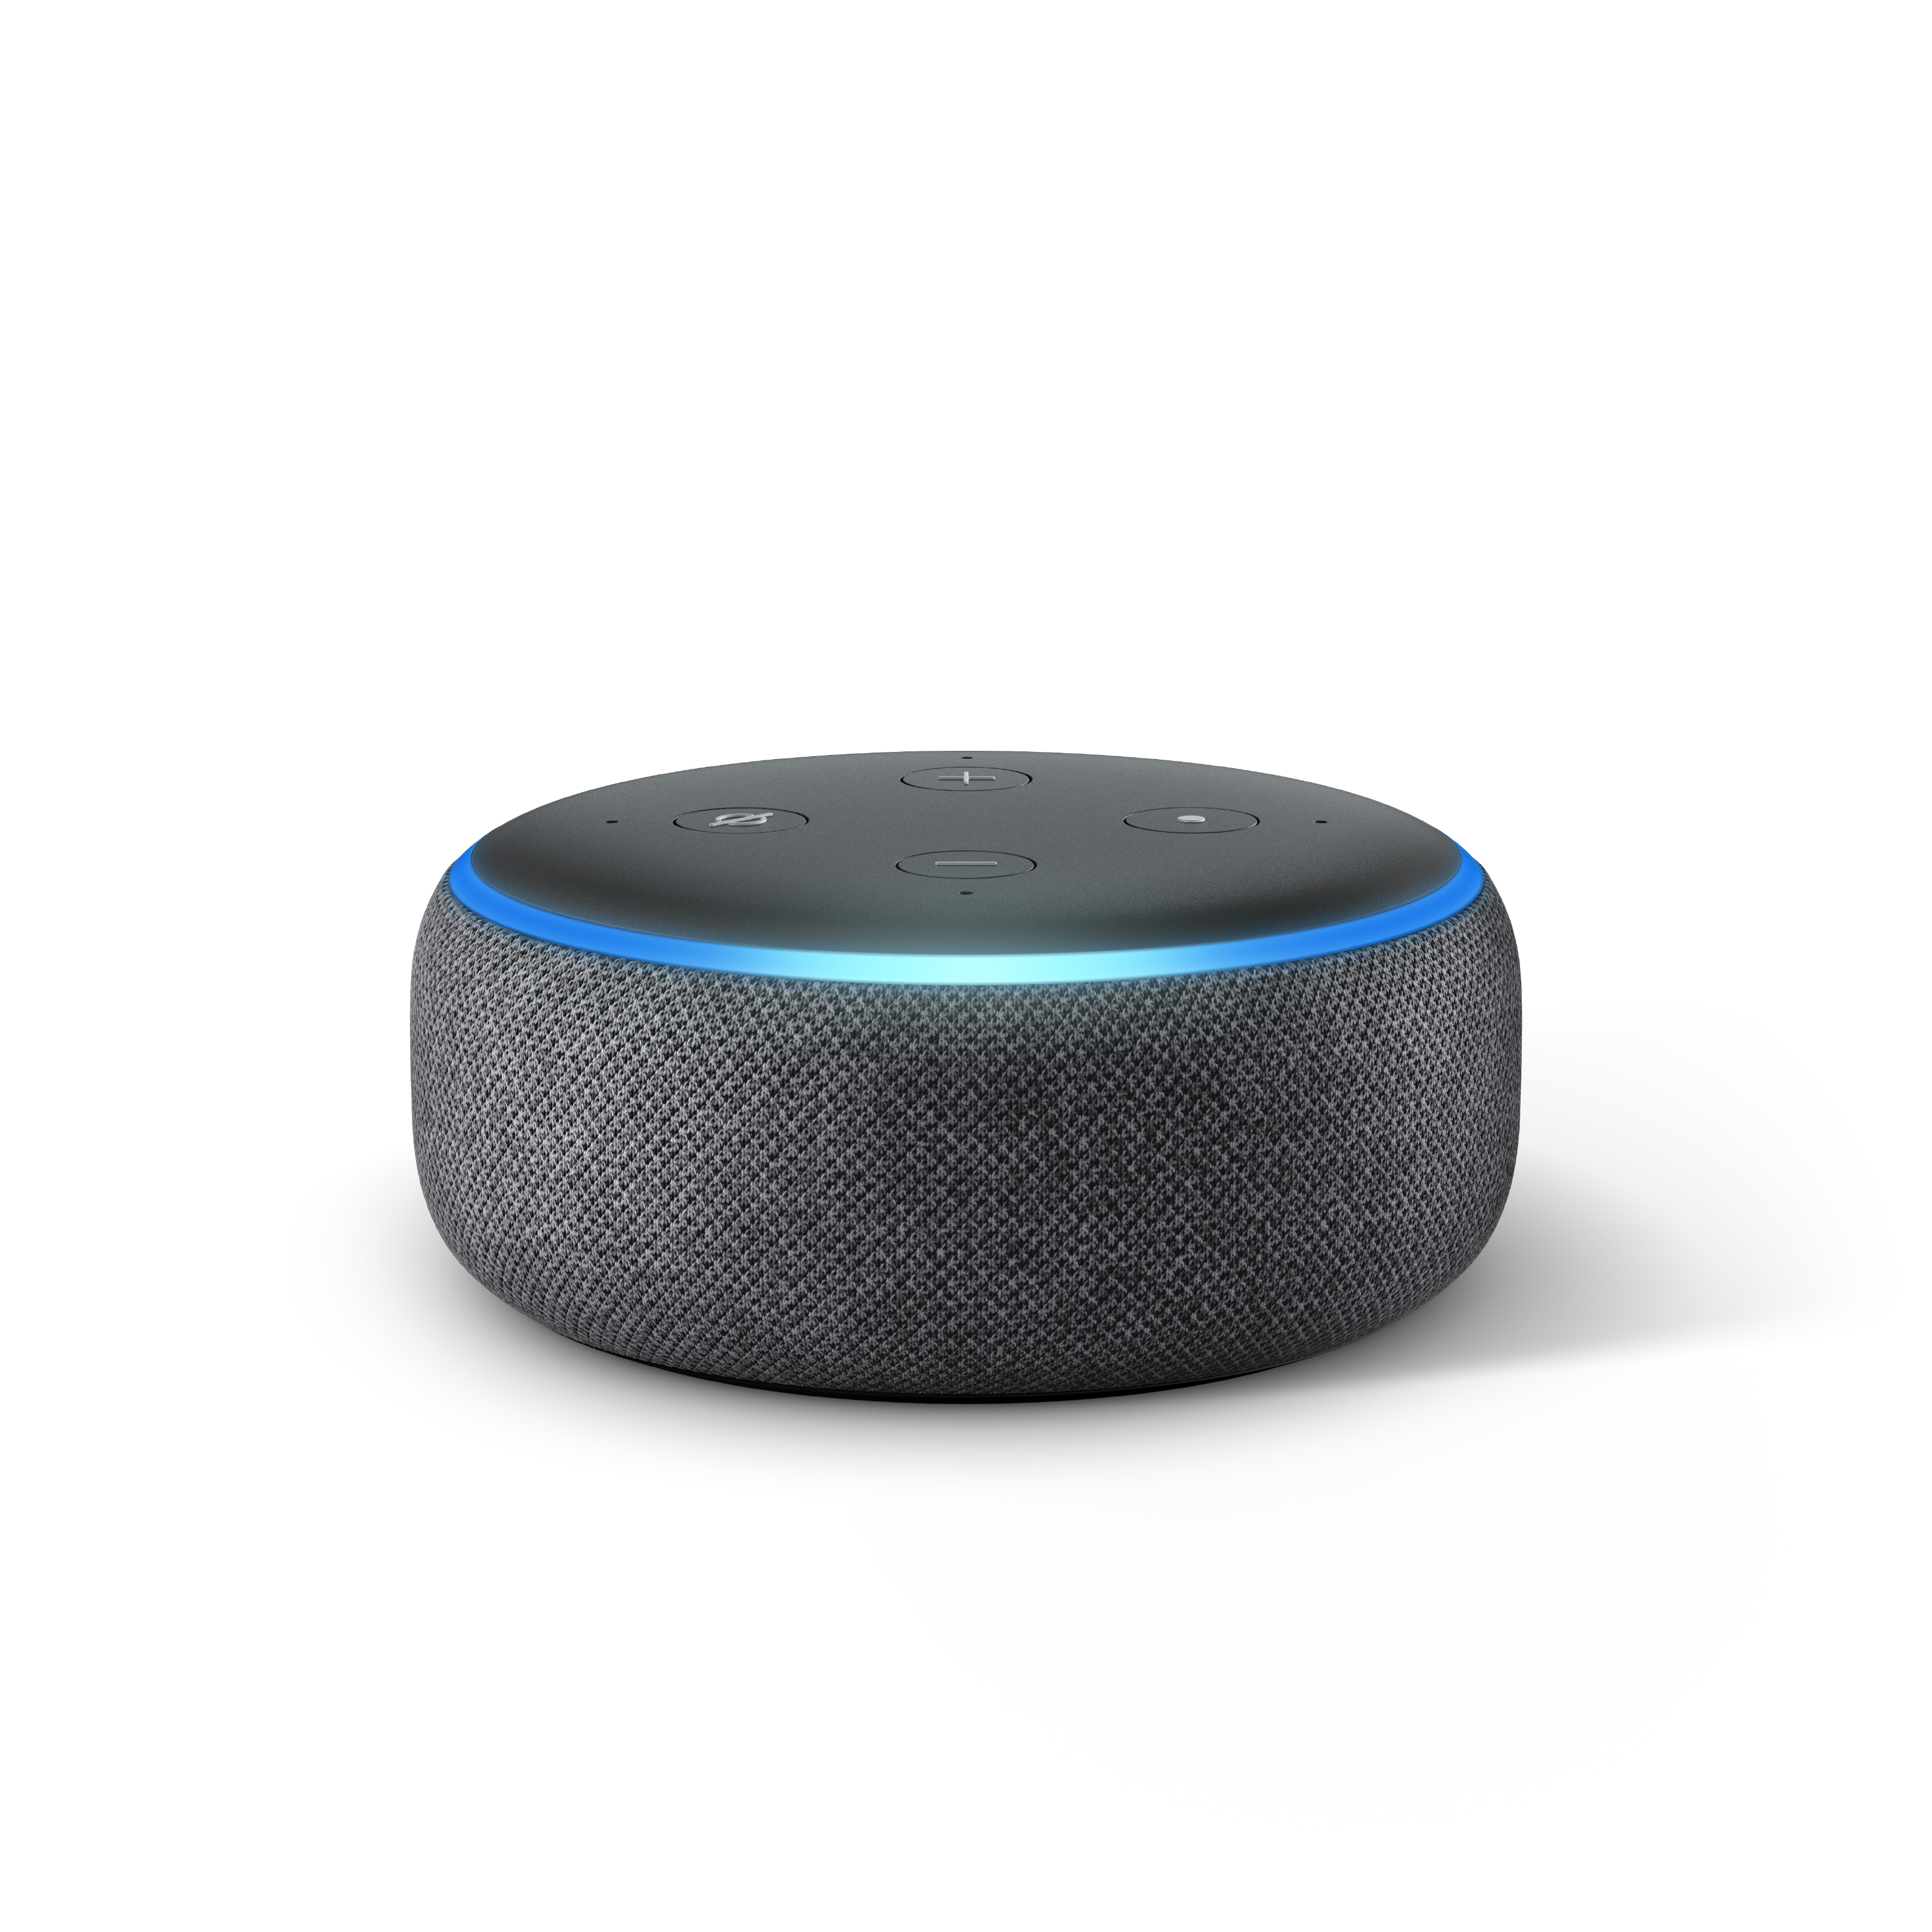 Top 5 Alexa skills to help with your New Year's resolutions